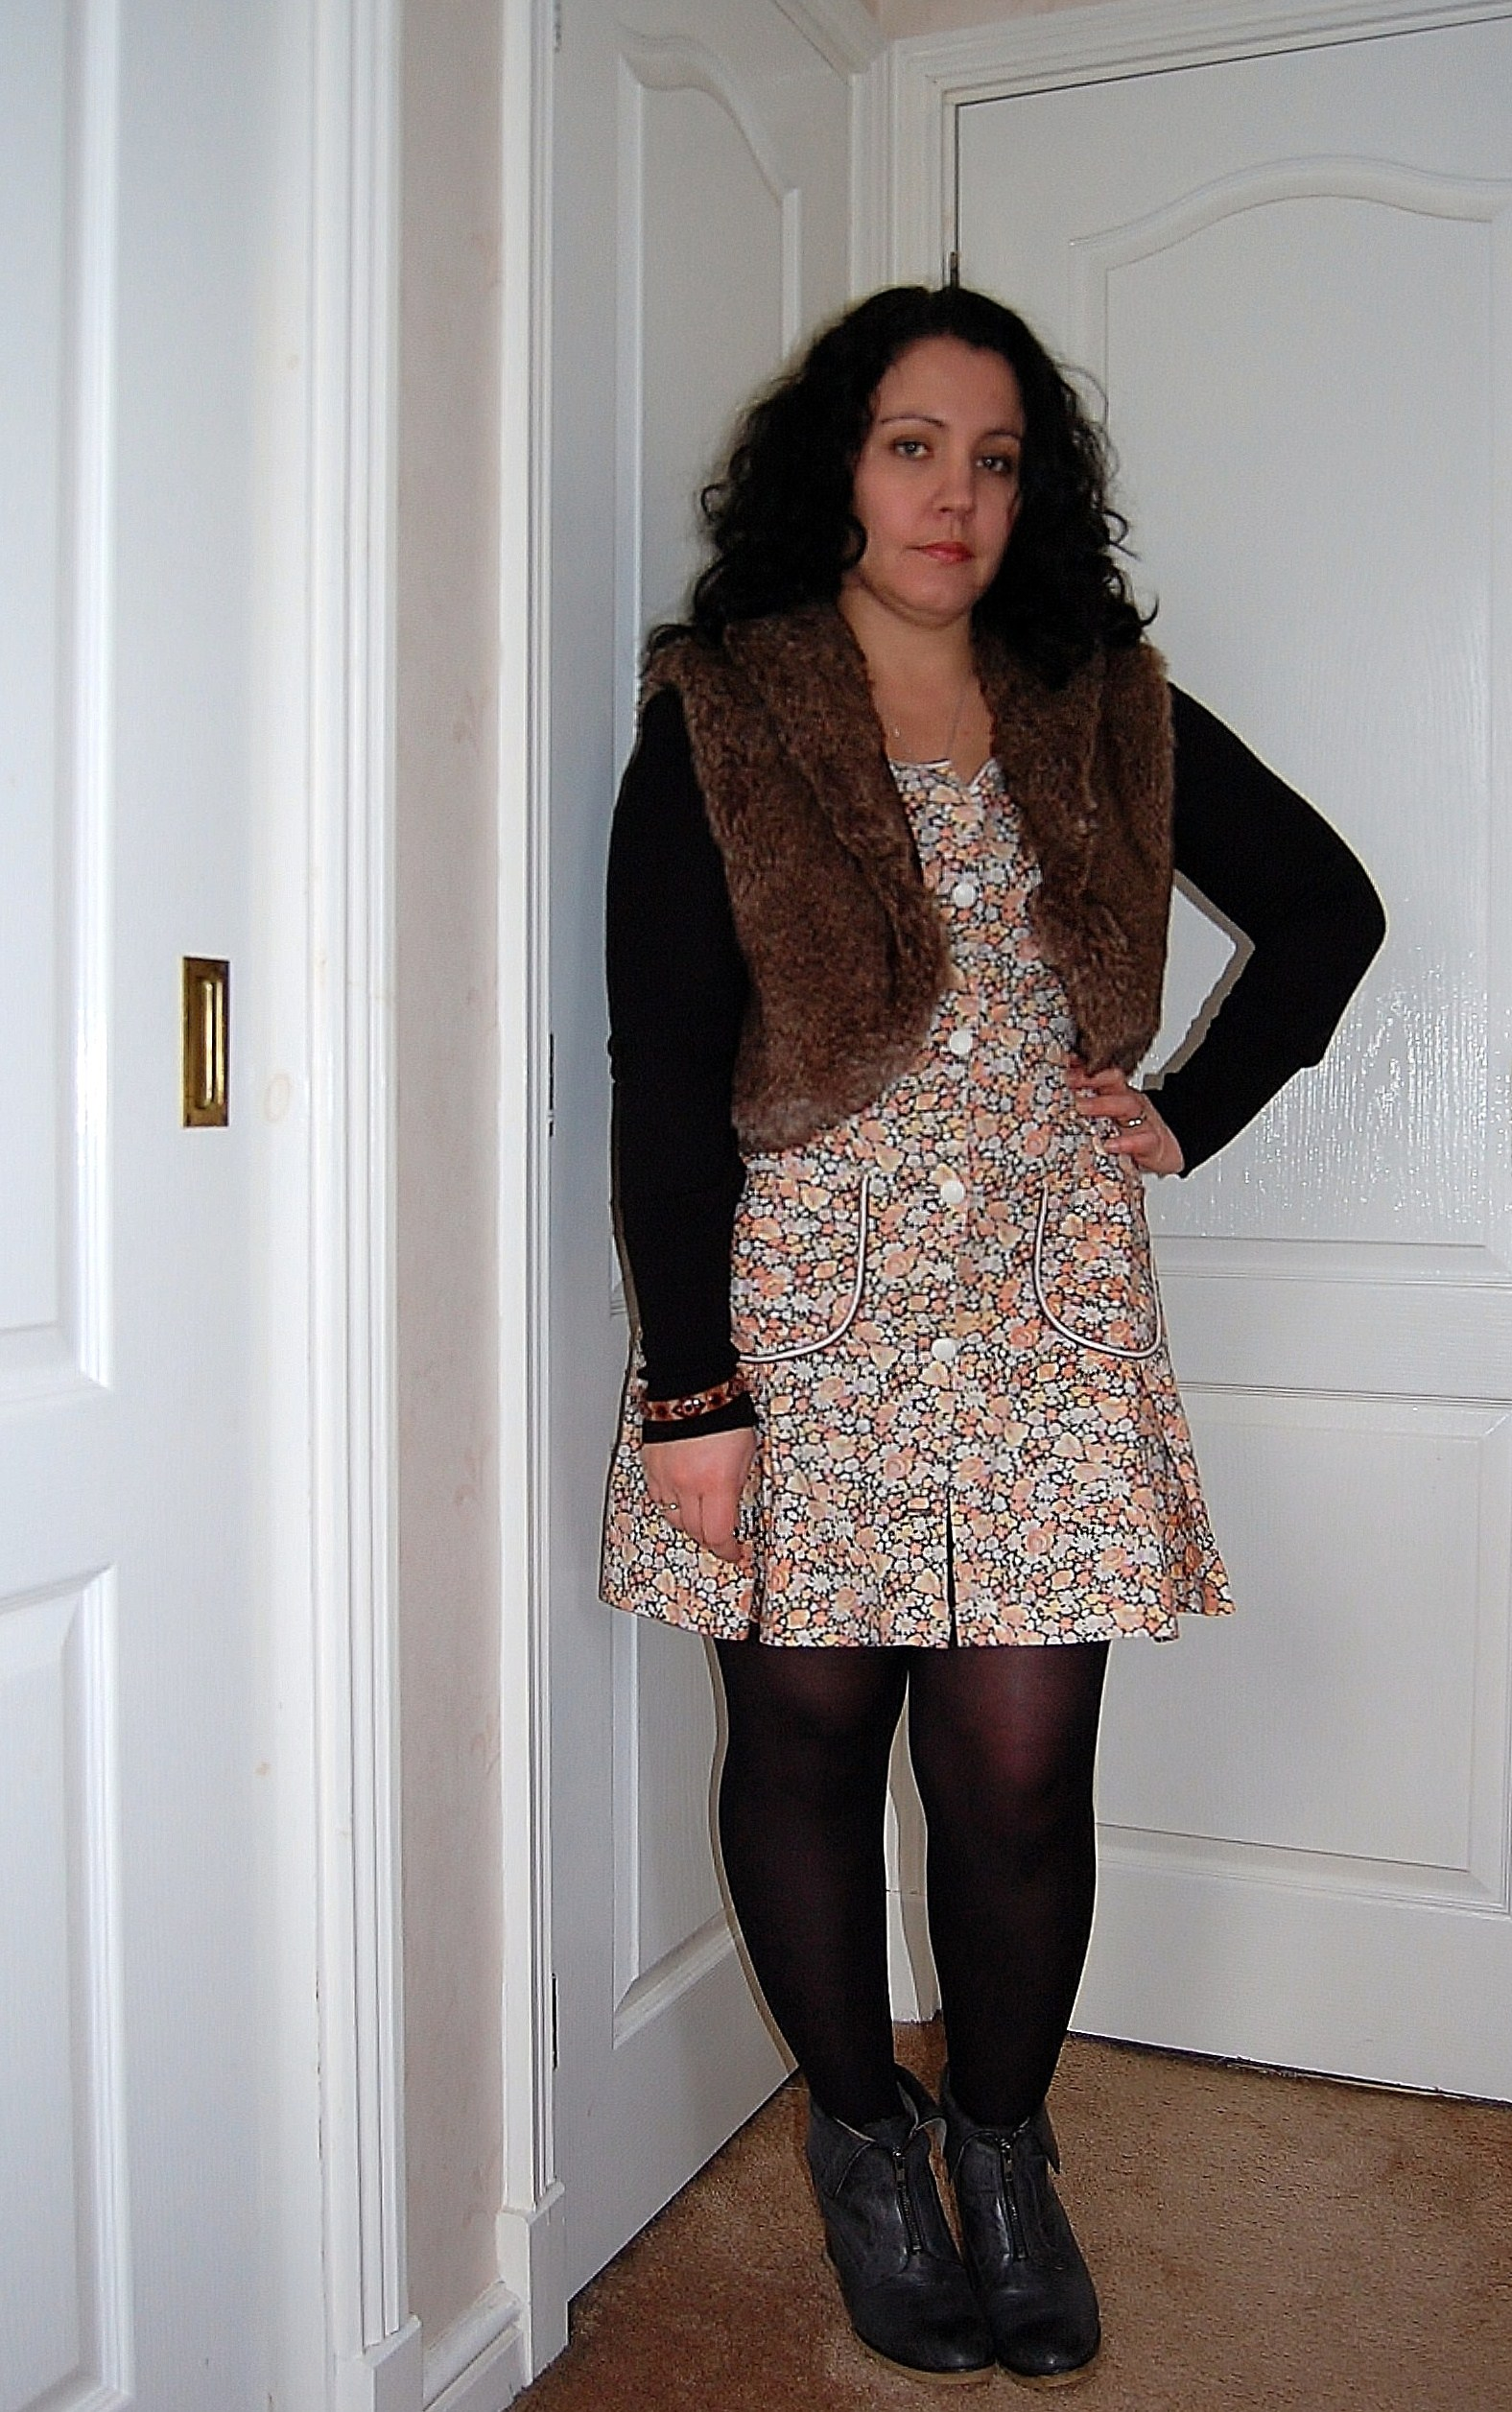 ethical outfit ww1 Ethical Outfit Challenge   Winter Warmers